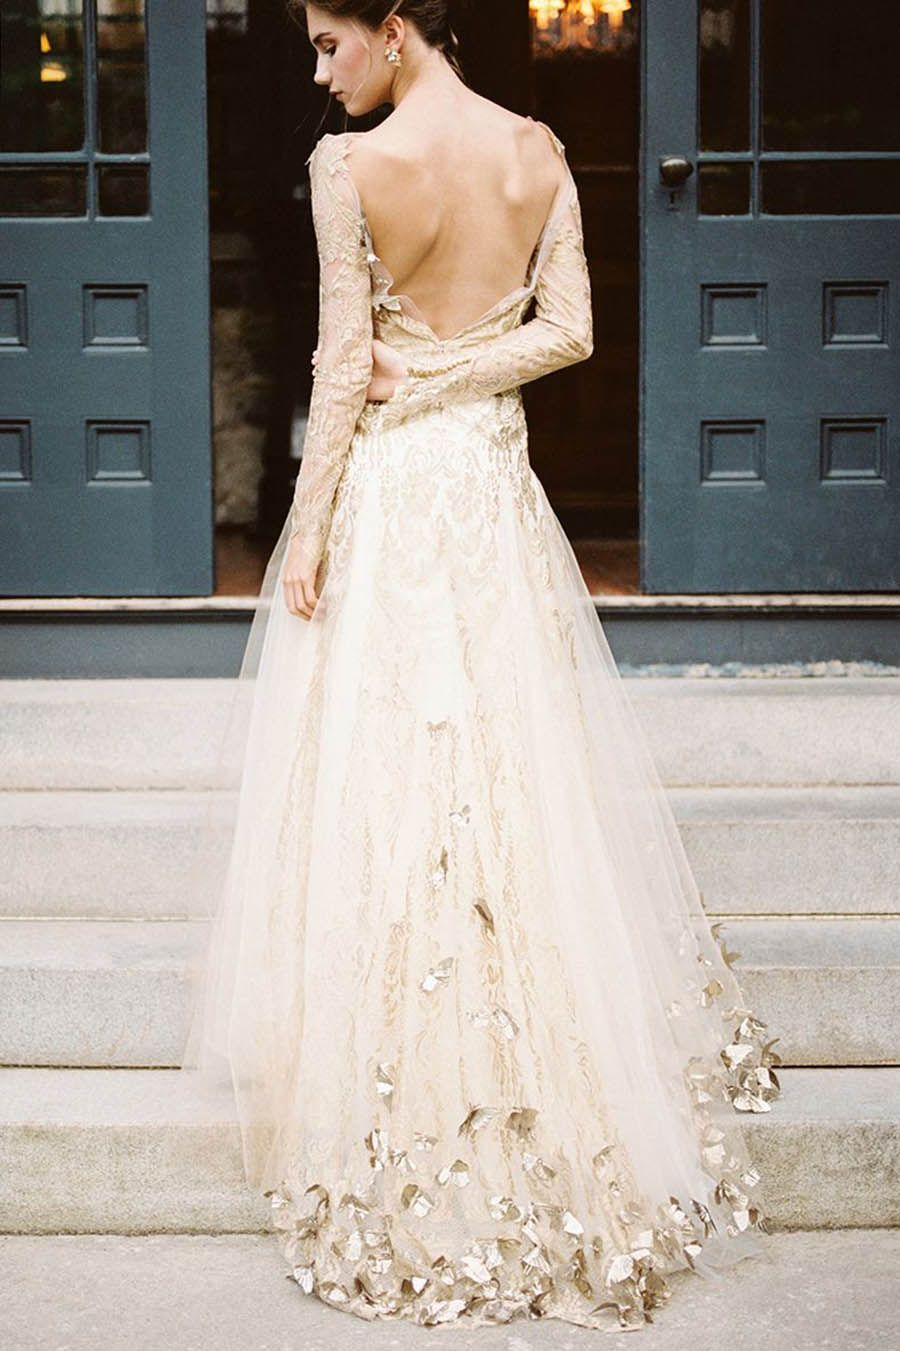 7 popular wedding trends for 2019 according to pinterest